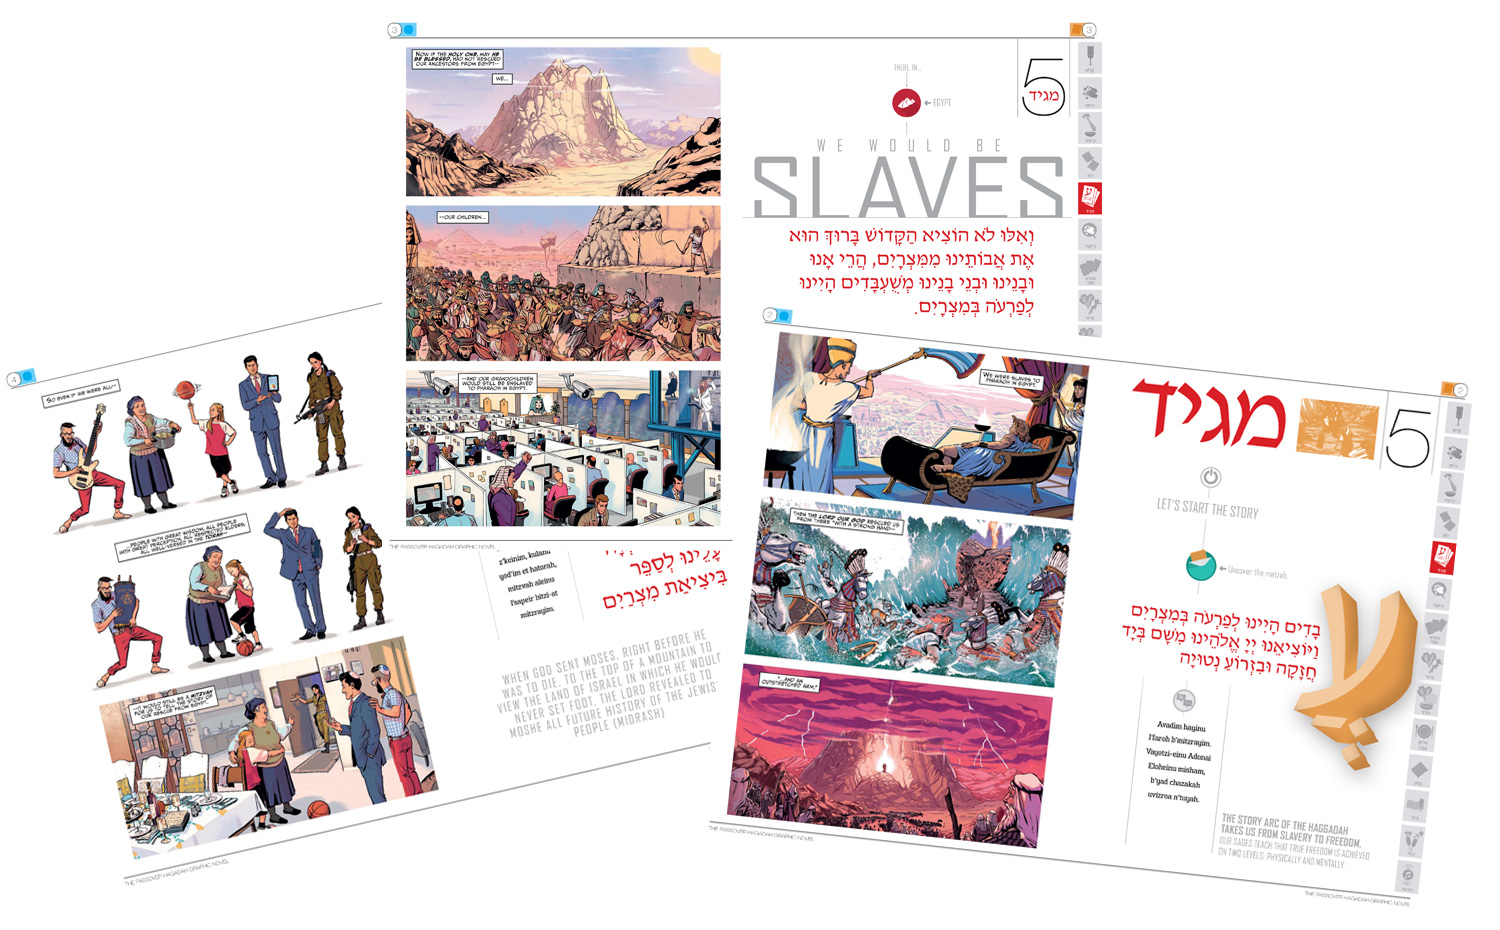 Sample pages of the Passover Haggadah Graphic Novel